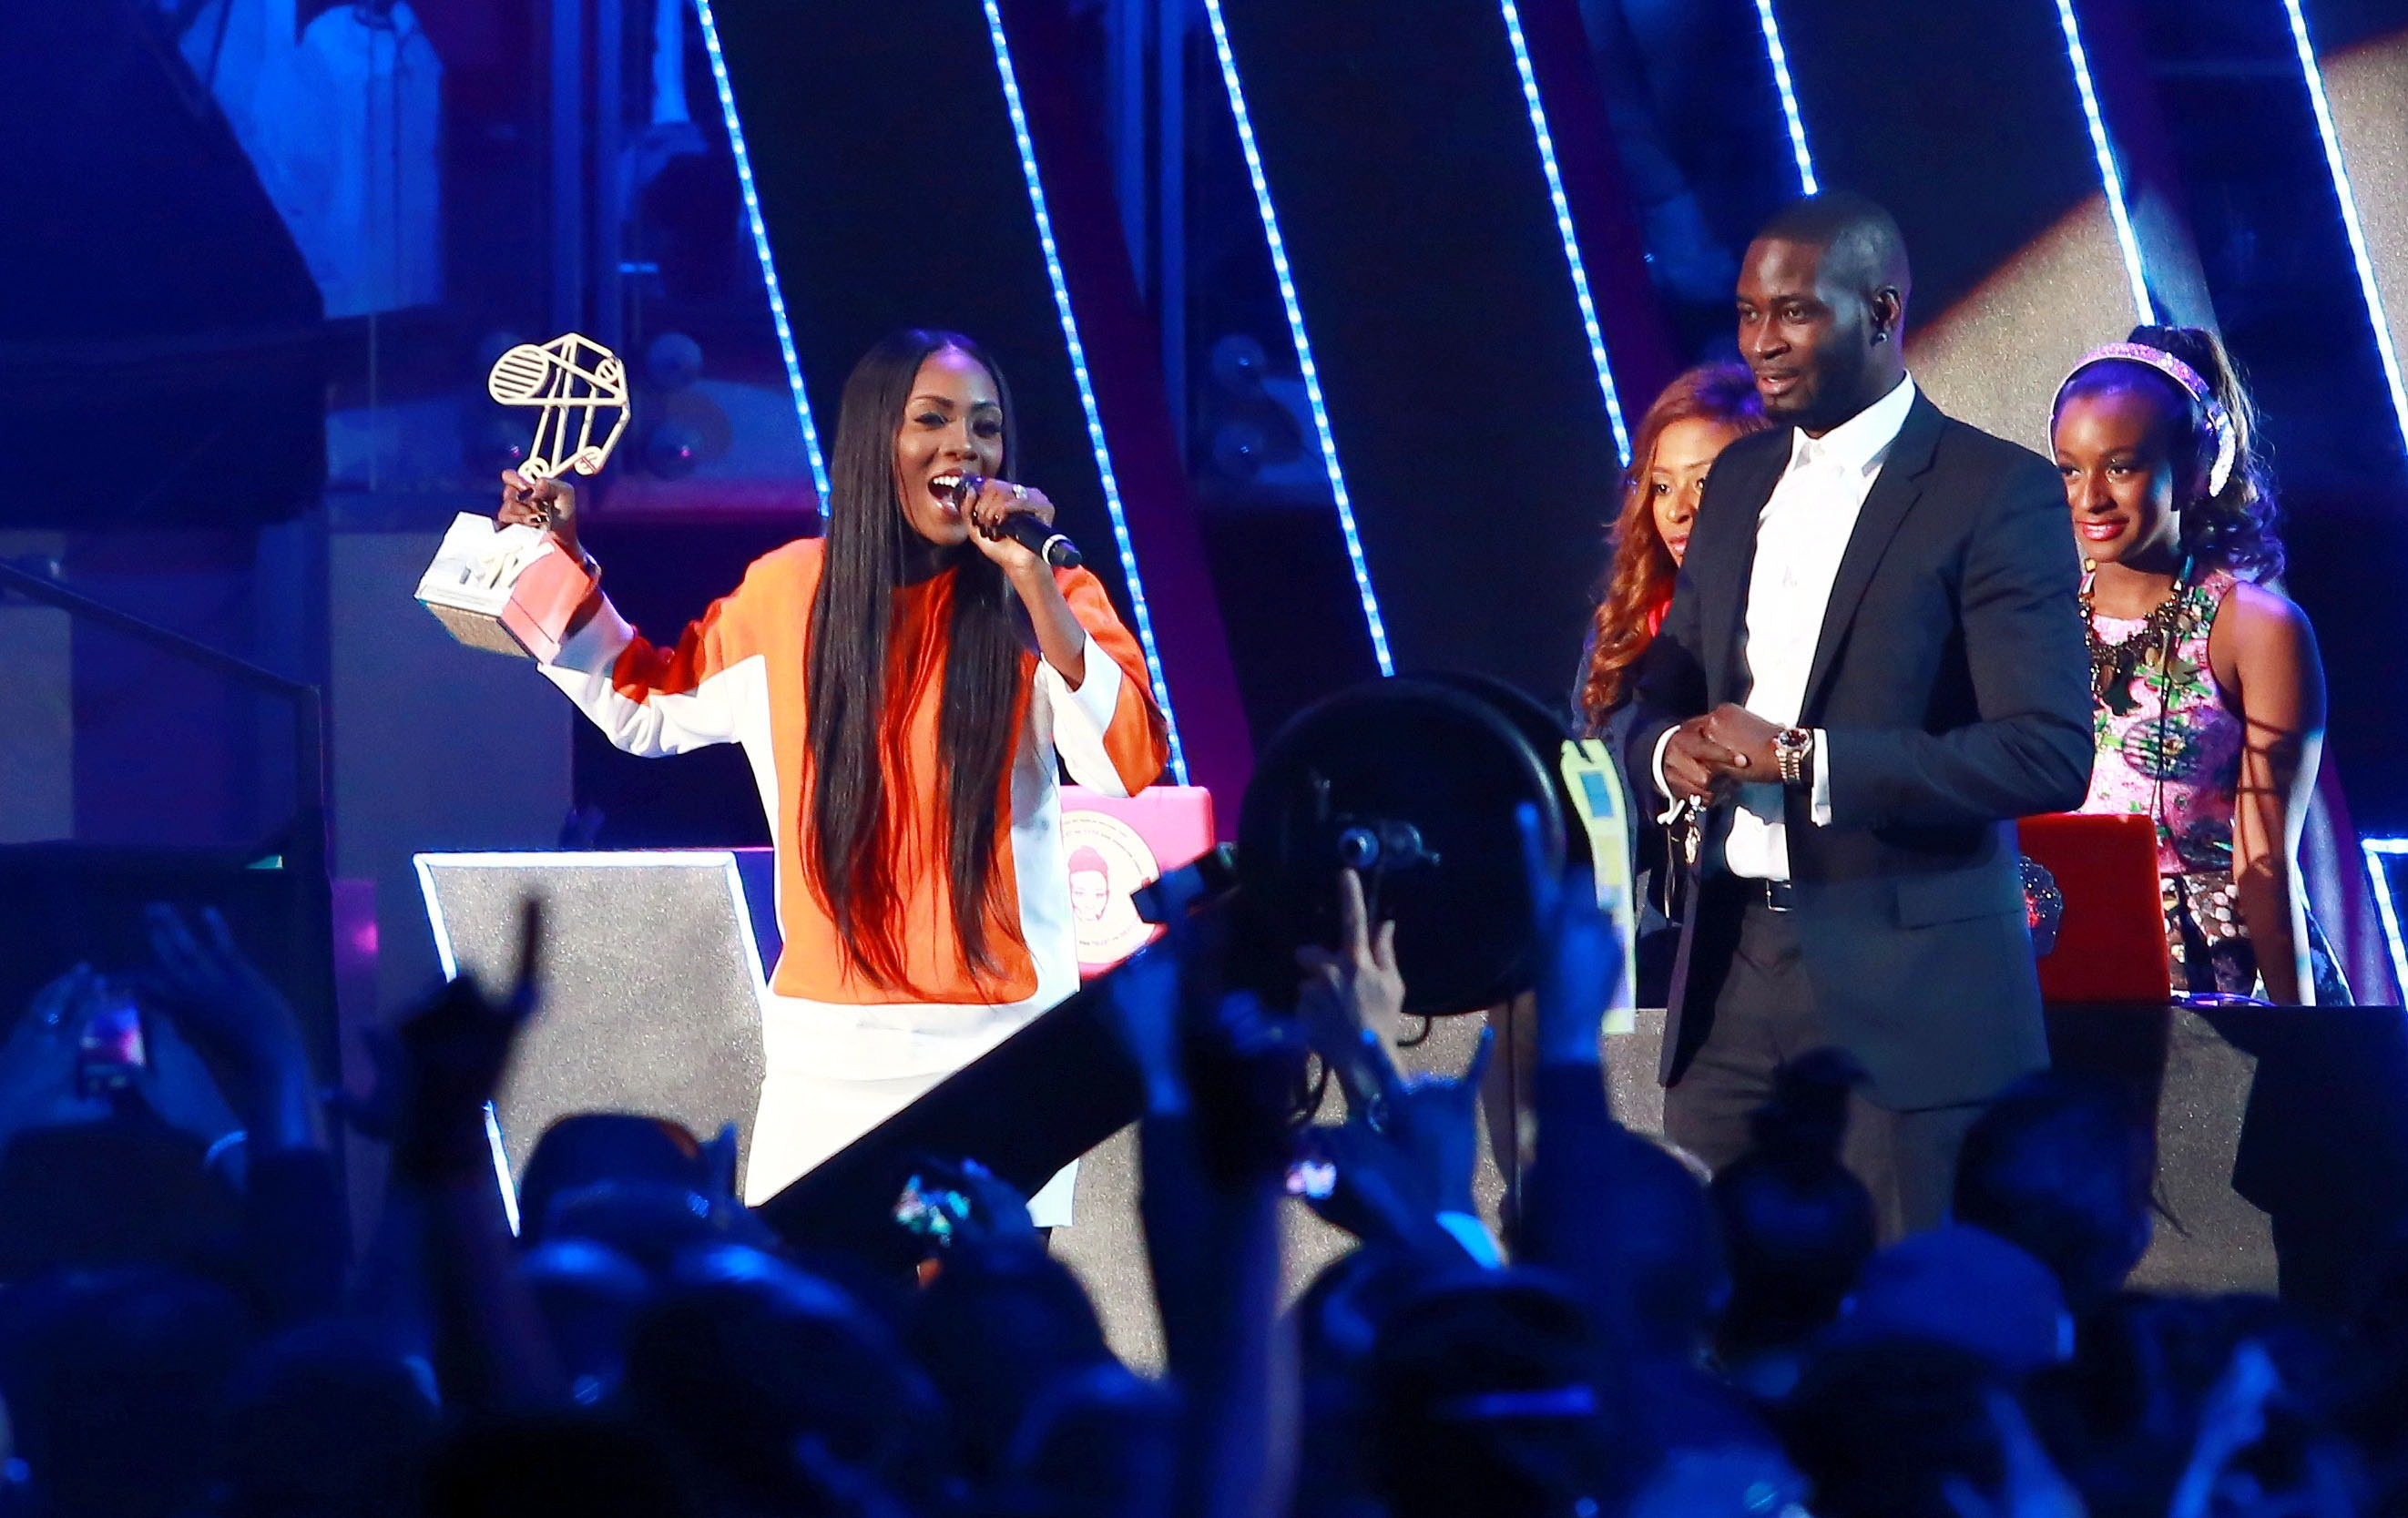 Nigerian singer Tiwa Savage wins the Best Female category at the MTV Africa Awards held at the International Convention Centre (ICC) in Durban on June 7, 2014.  (Getty)